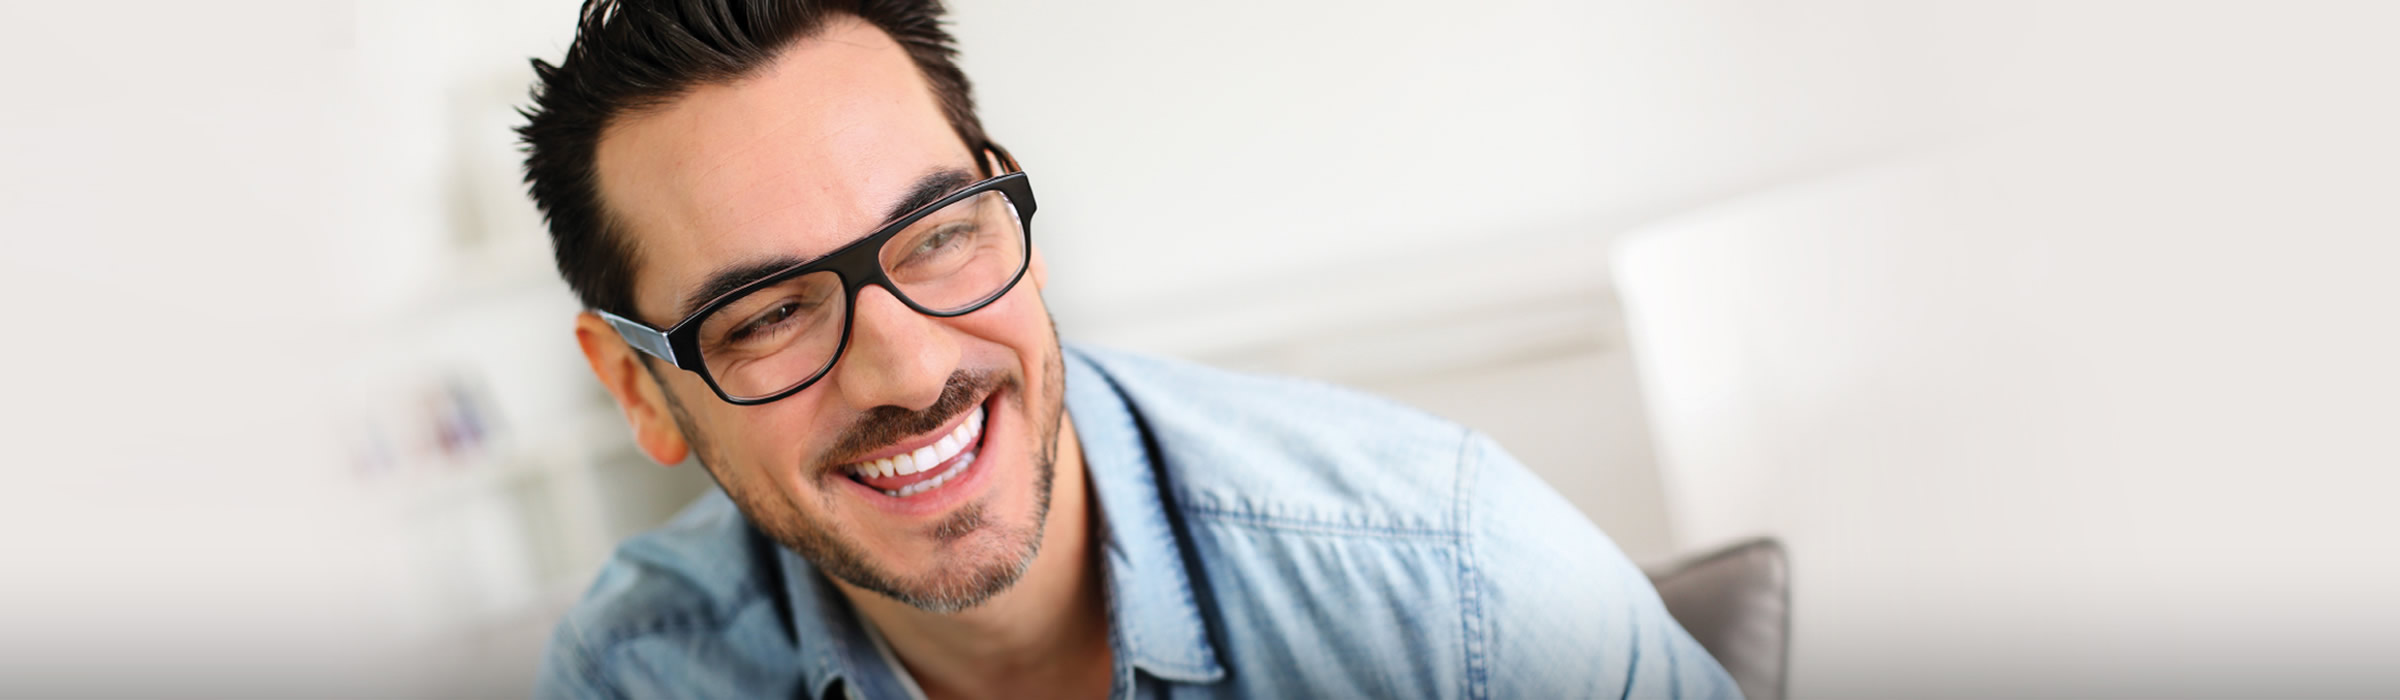 Man in glasses smiling. Teeth whitening dentist in Watford, Hertfordshire.